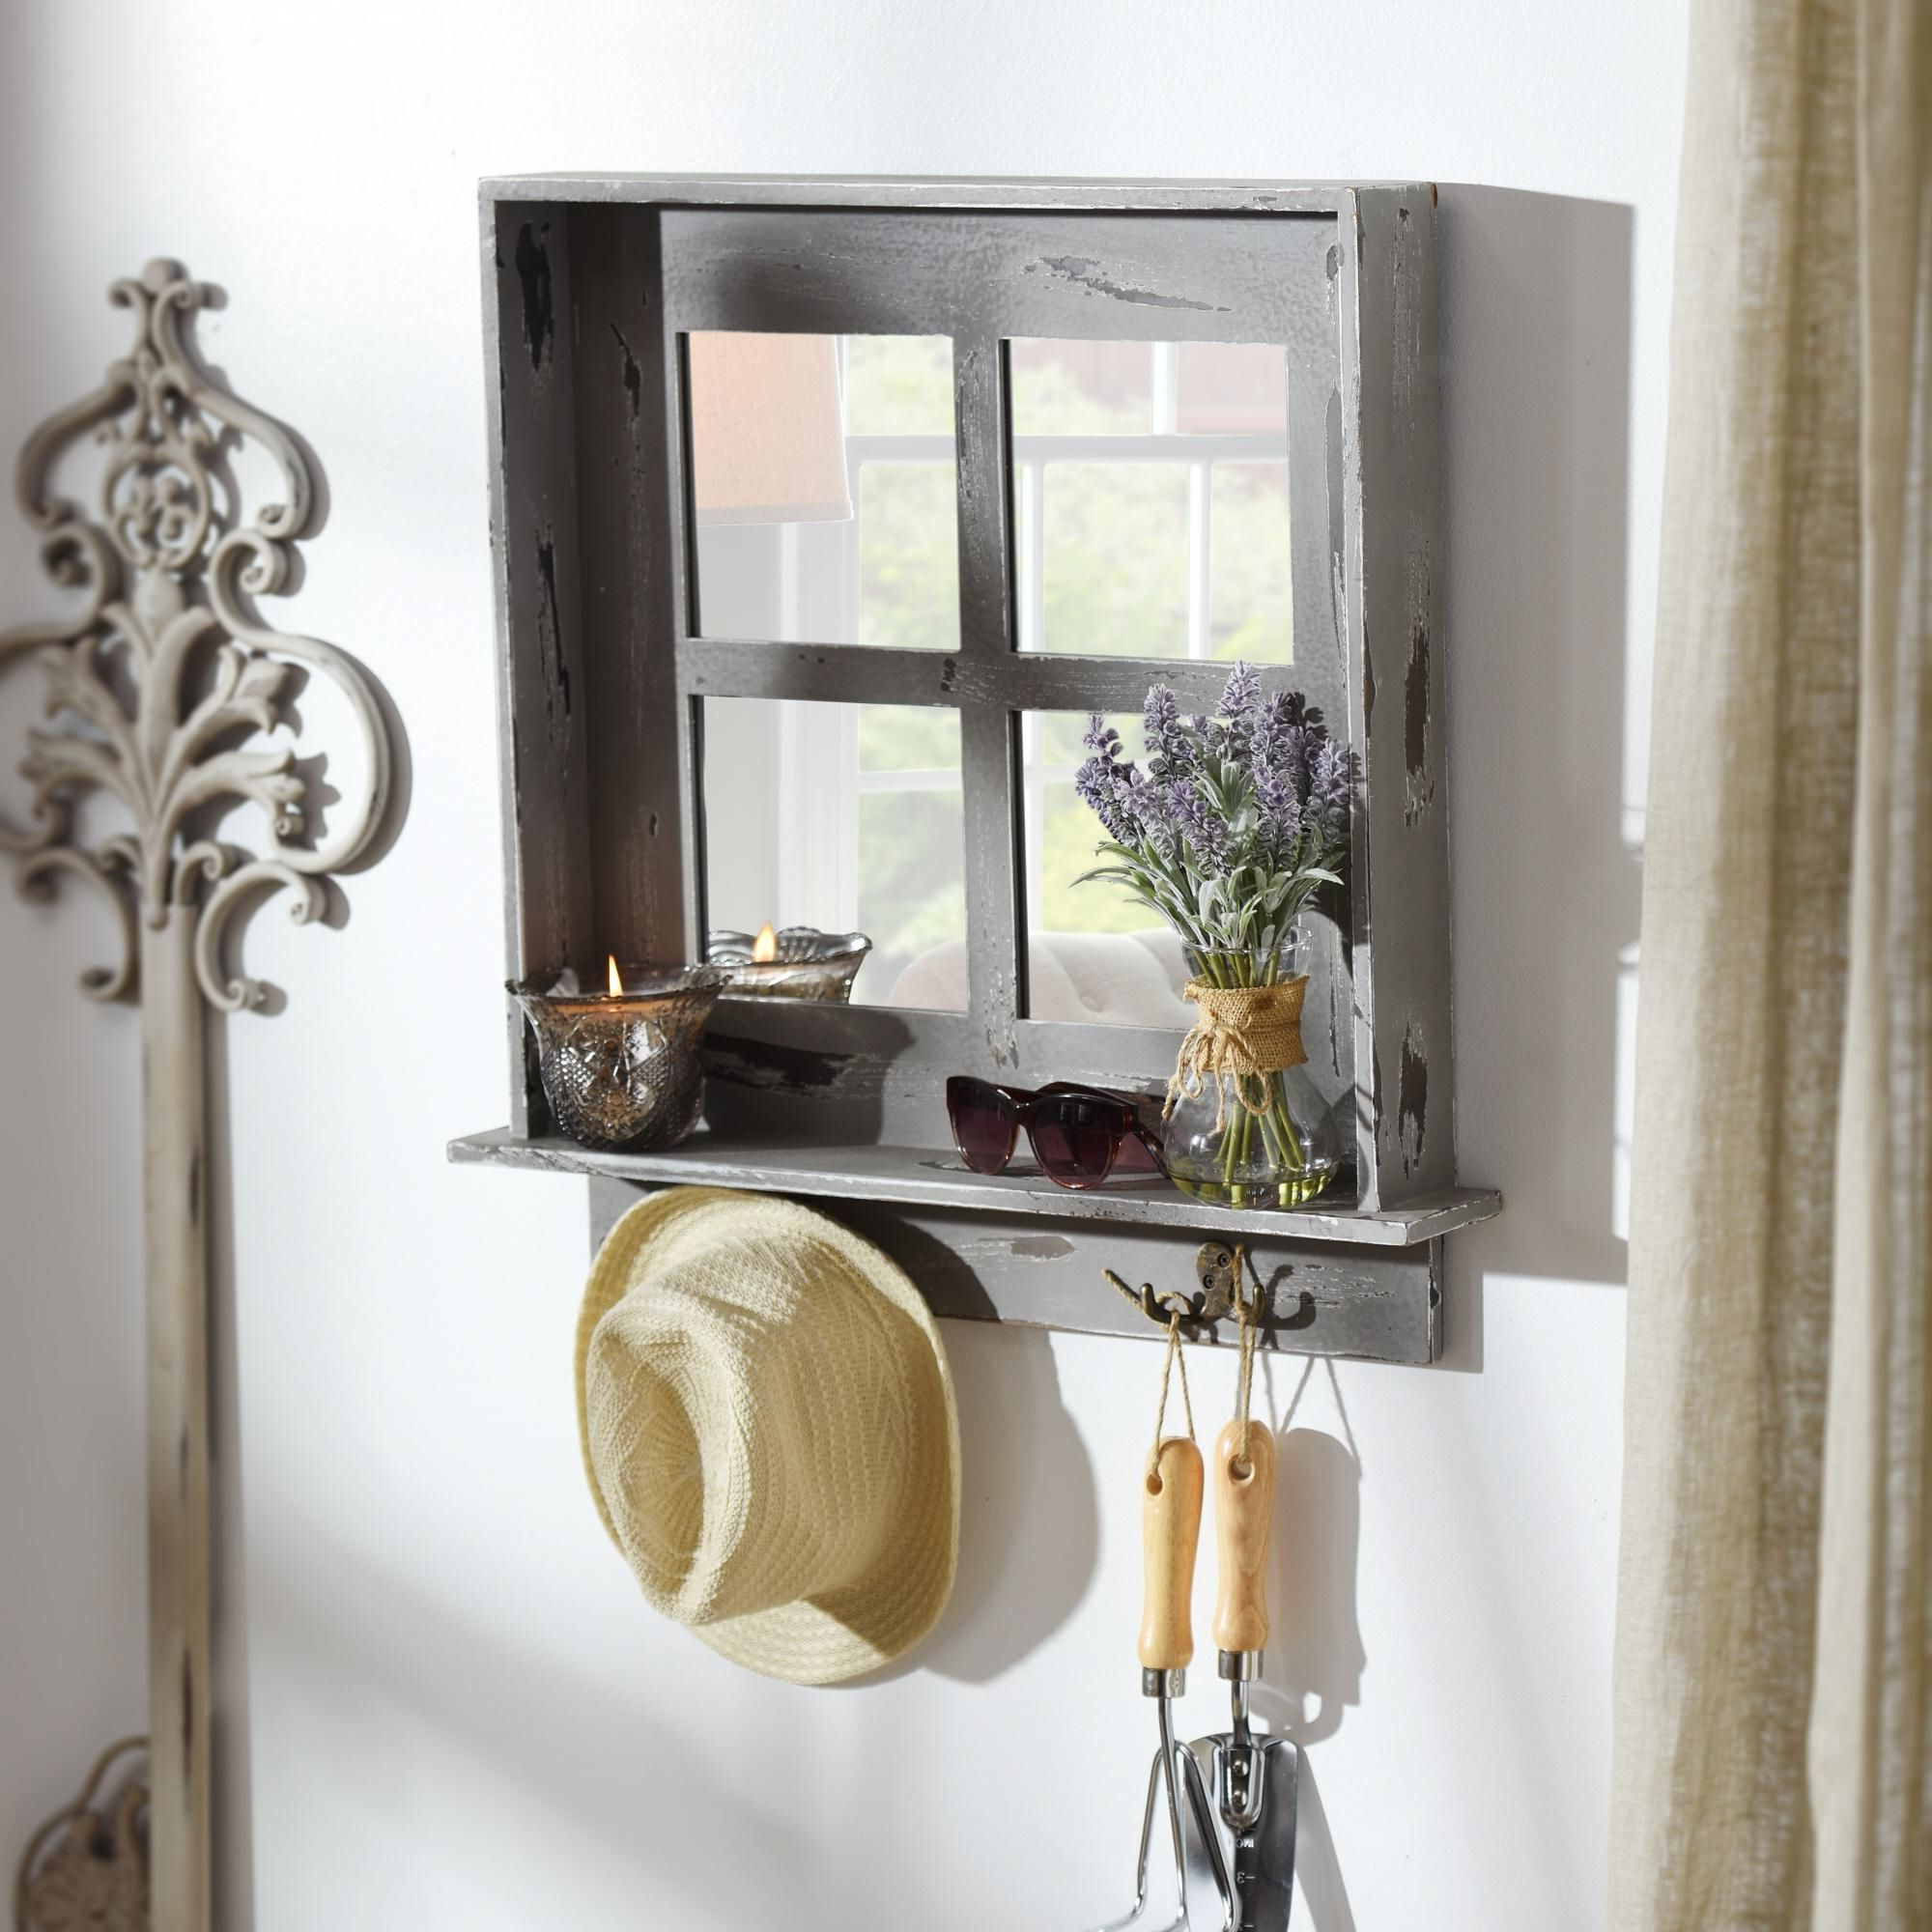 Newest Product Details Gray Window Pane Wall Shelf Mirror With Hooks In Throughout Wall Mirrors With Shelf And Hooks (View 8 of 20)